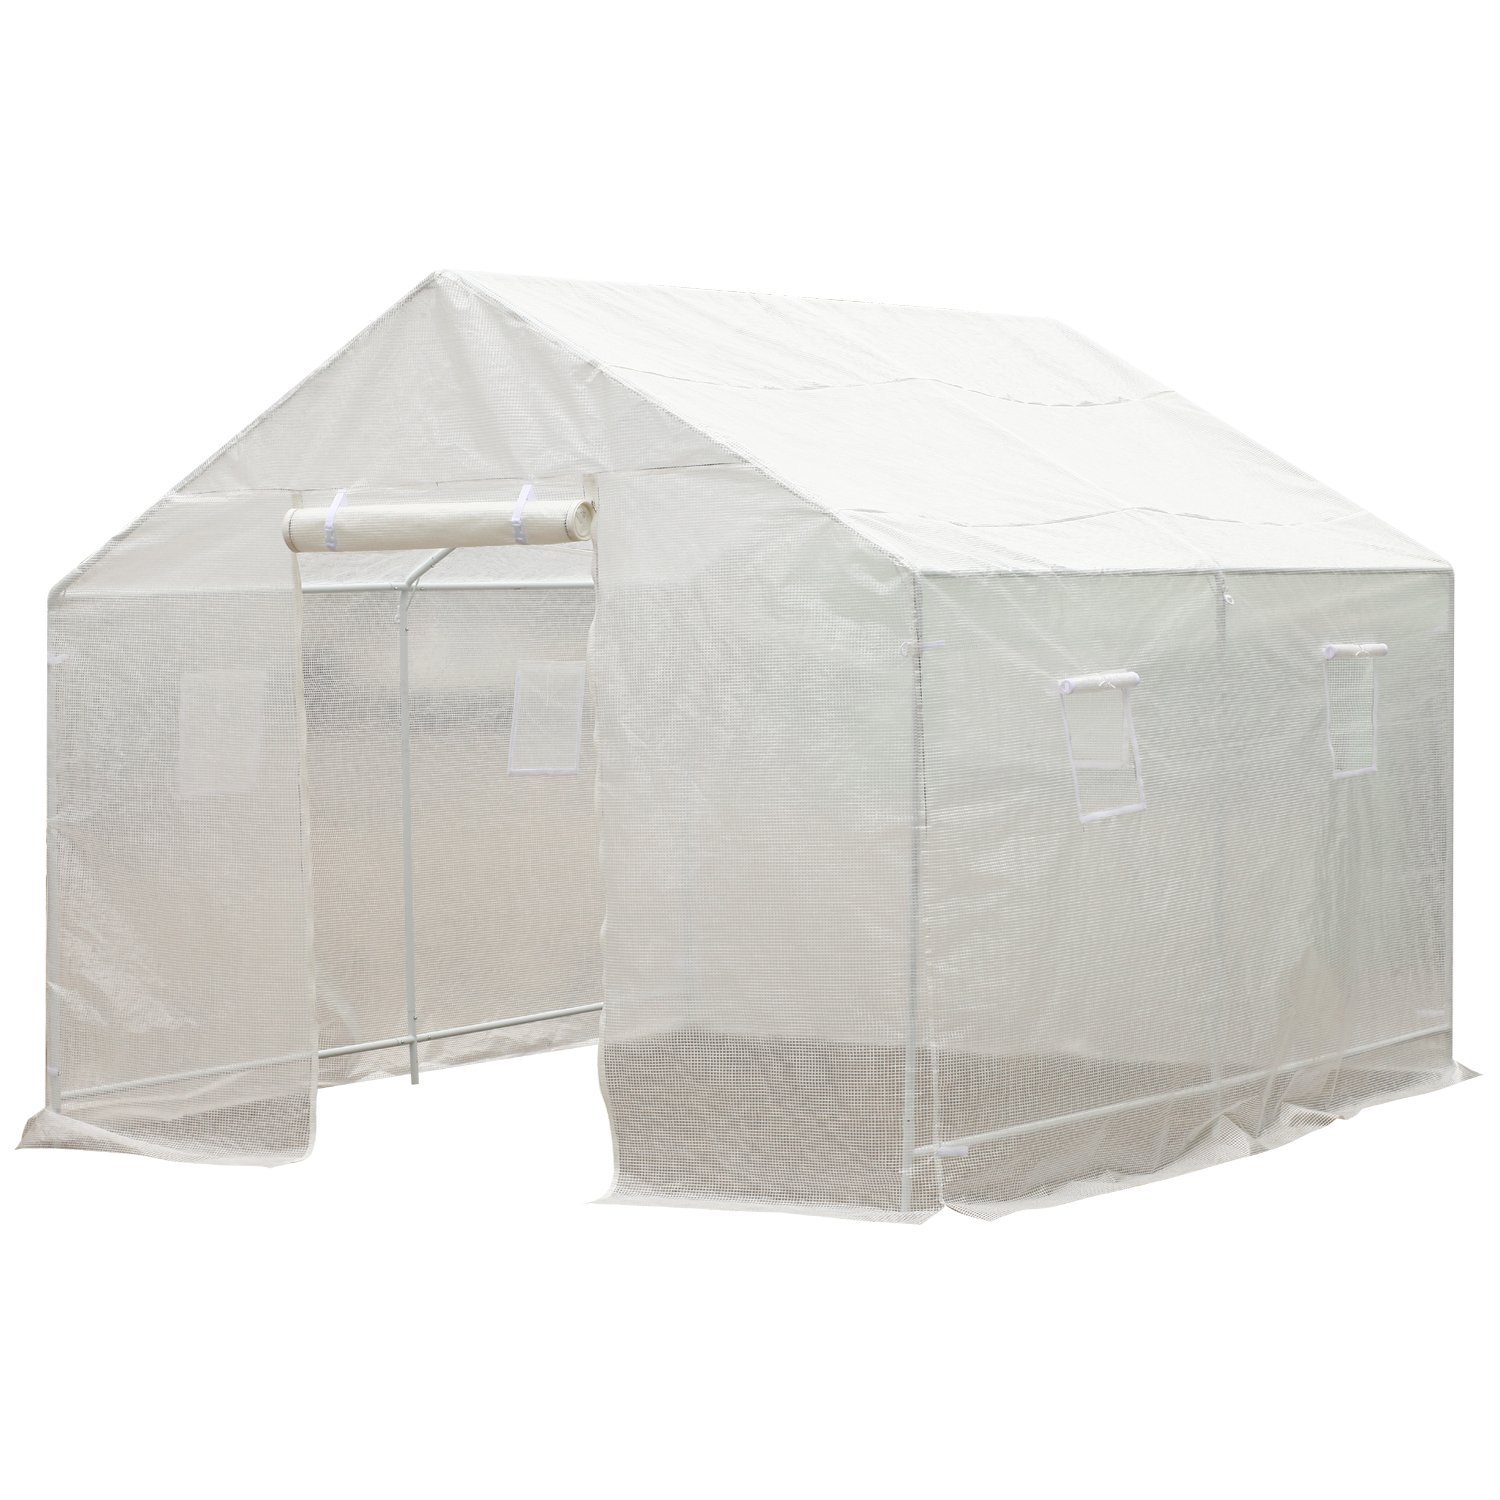 Outsunny 10' x 9.5' x 8' Ventilated Portable Walk-in Greenhouse with PE Cover by Outsunny